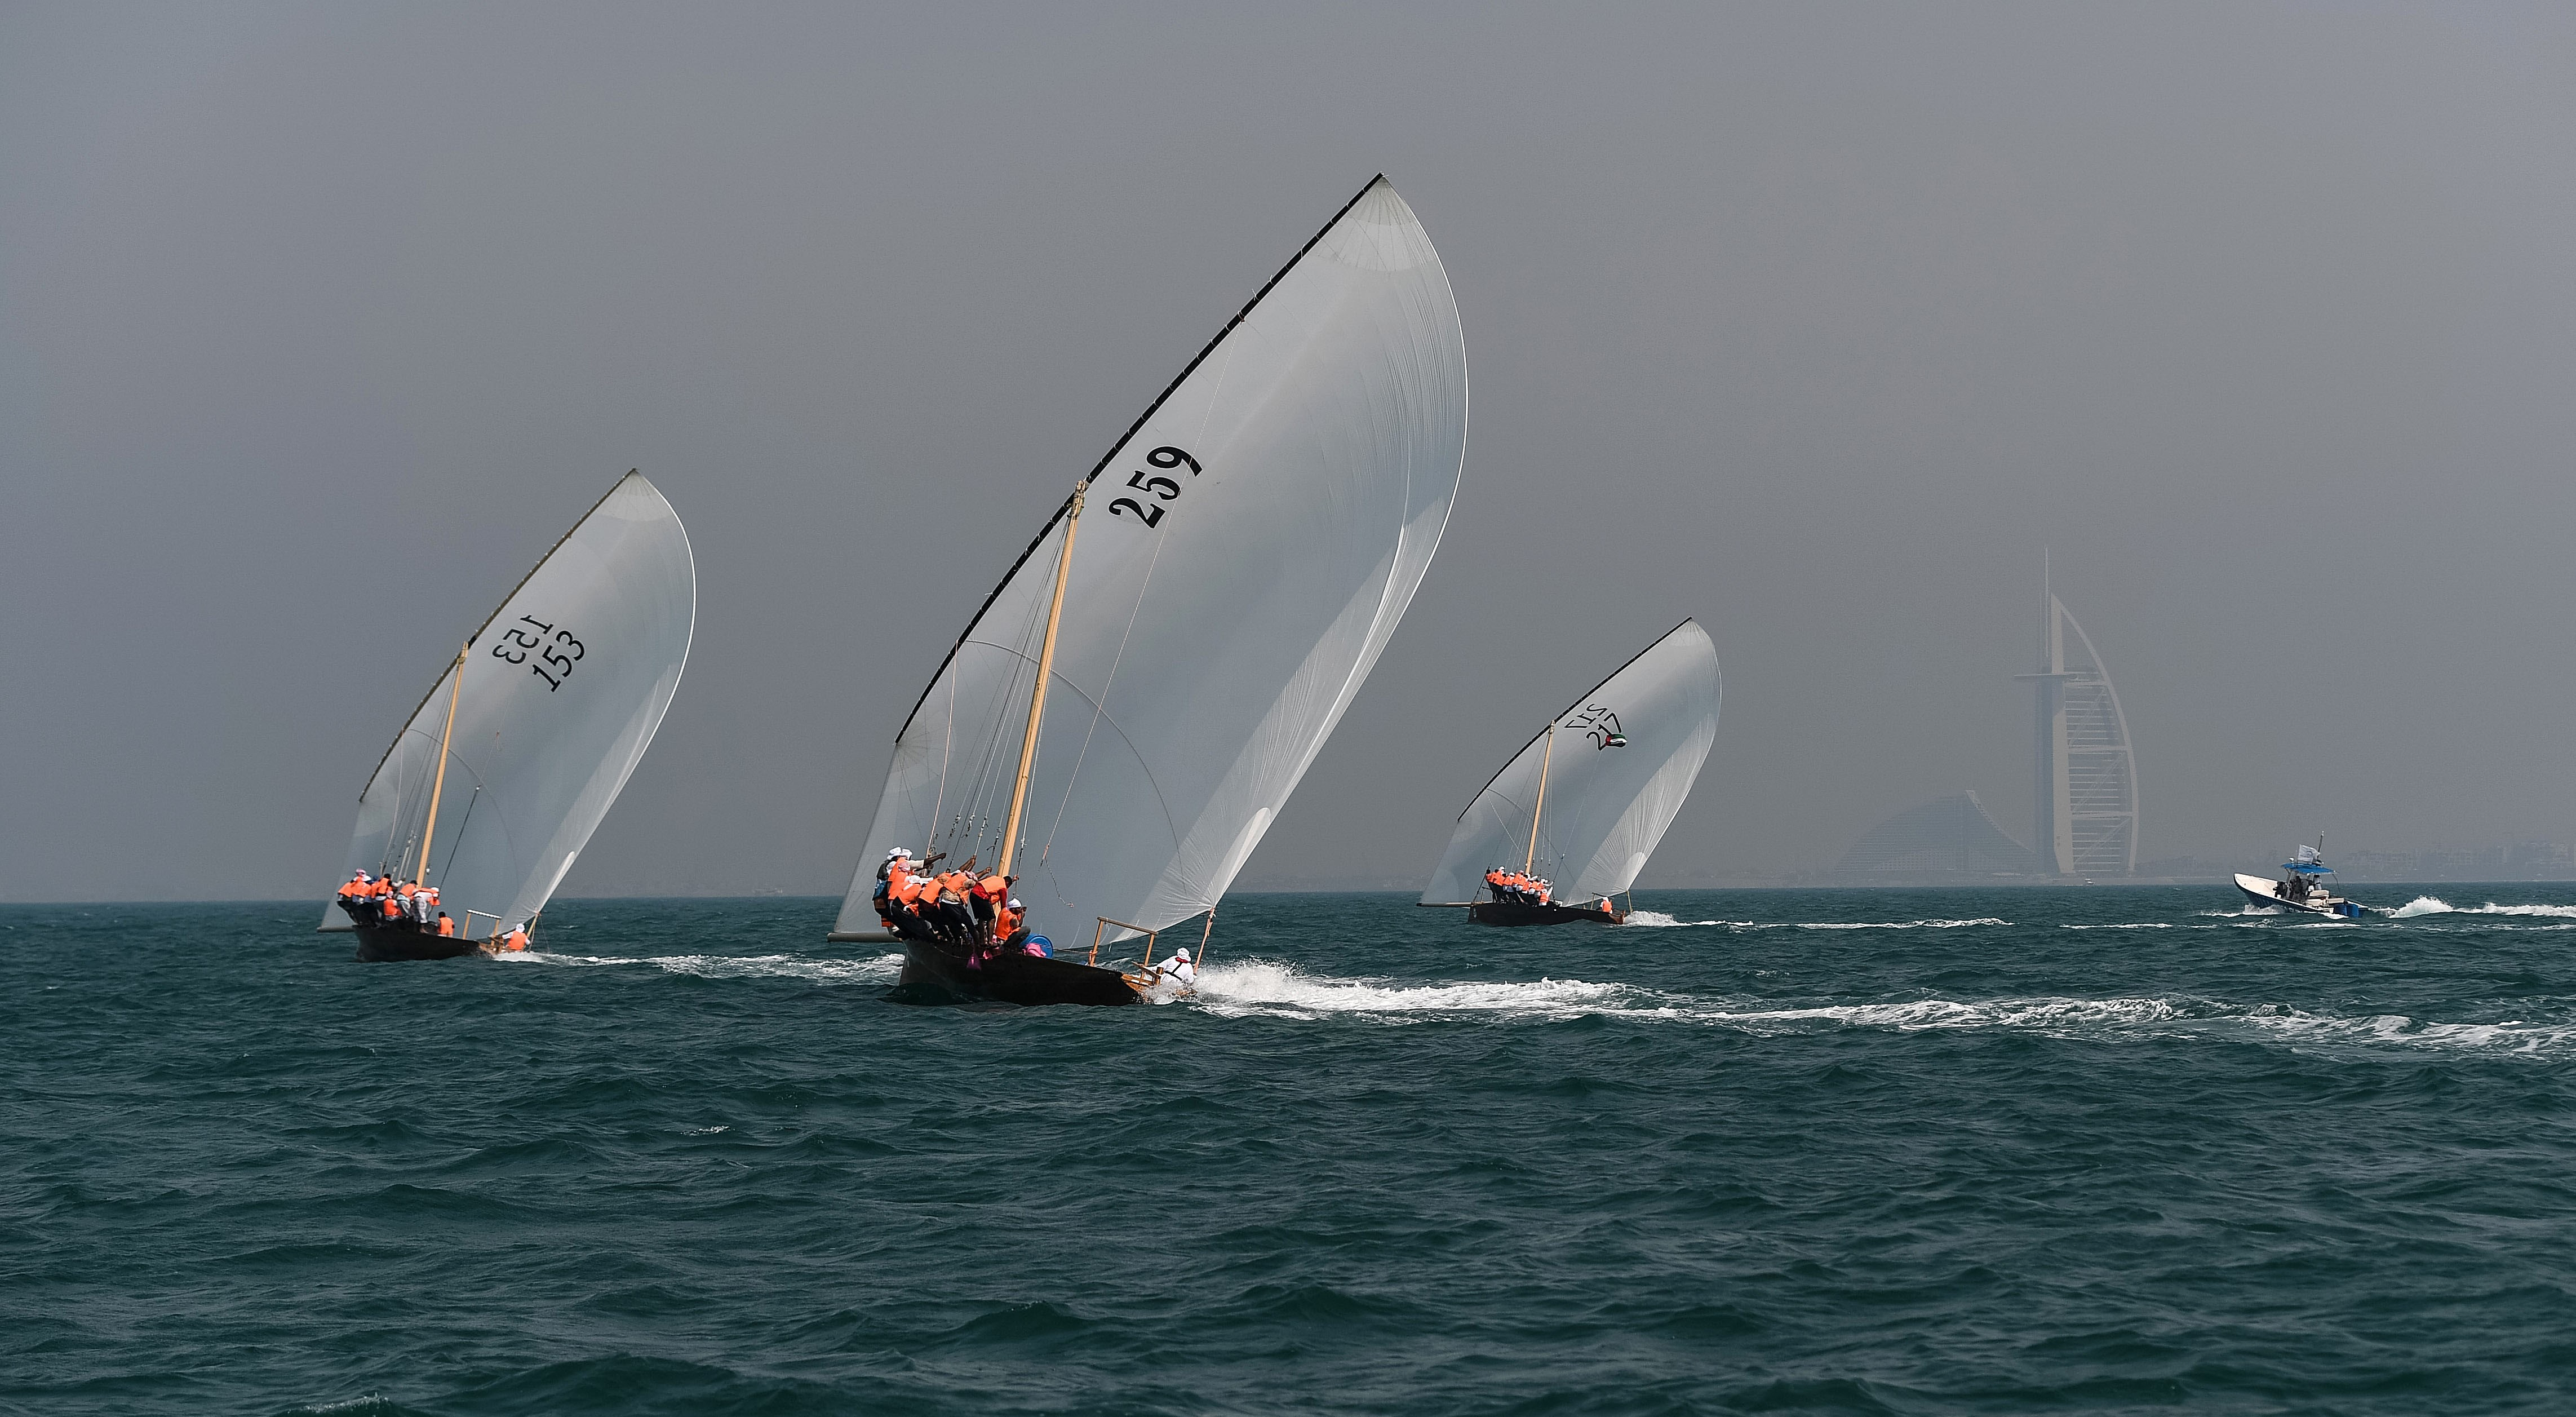 """Zilzal"" 217 champion of the 43ft Dhow Race Overall"